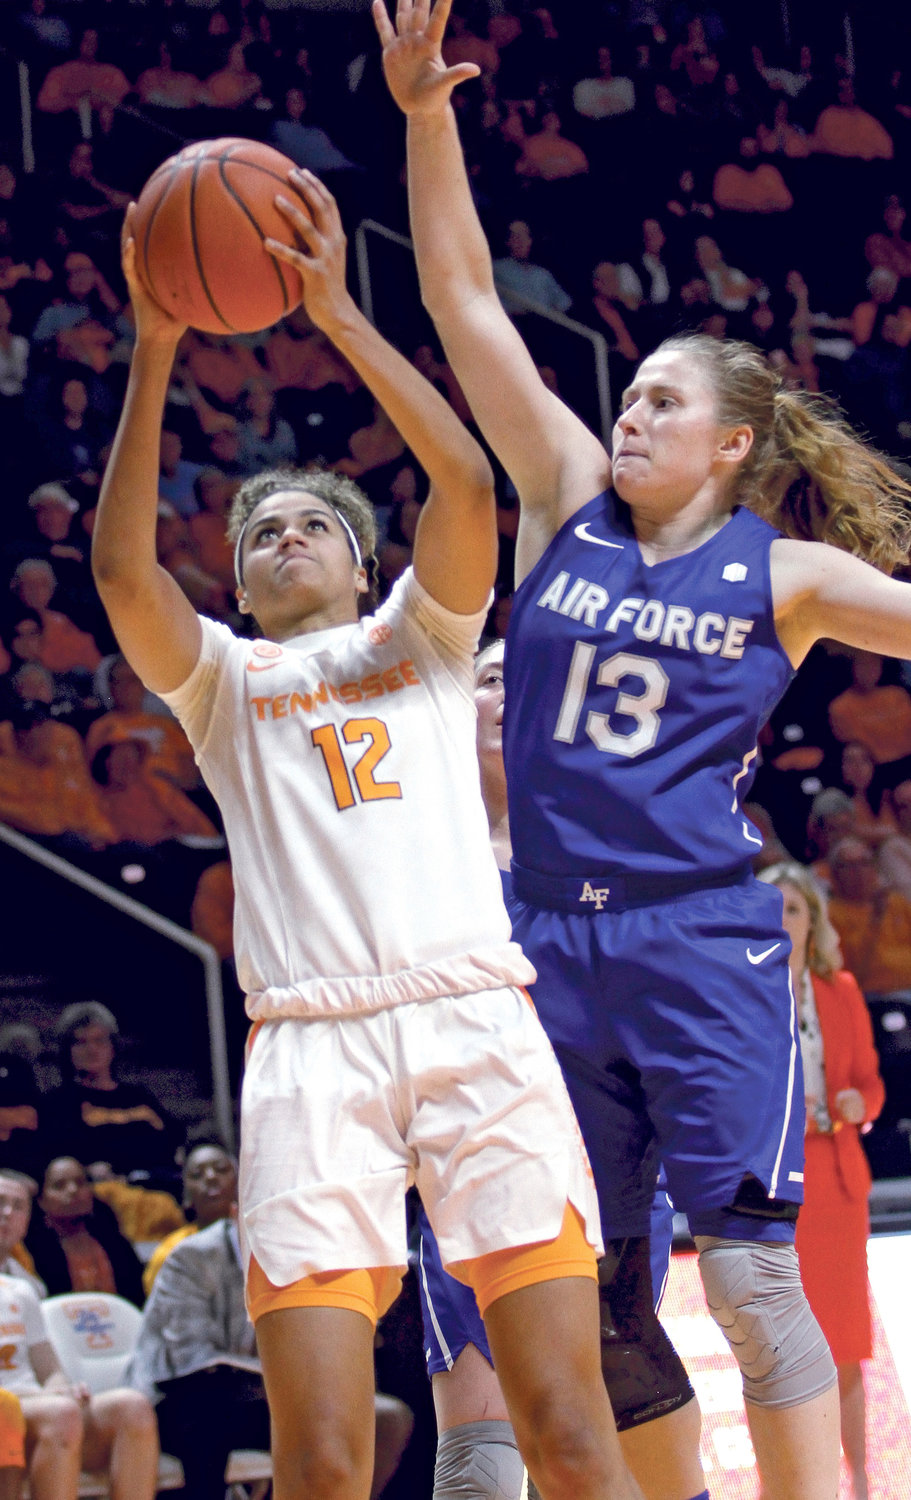 Tennessee's Rae Burrell (12) drives to the basket for a layup against Air Force's Emily Conroe (13), Sunday, during an NCAA game in Knoxville.